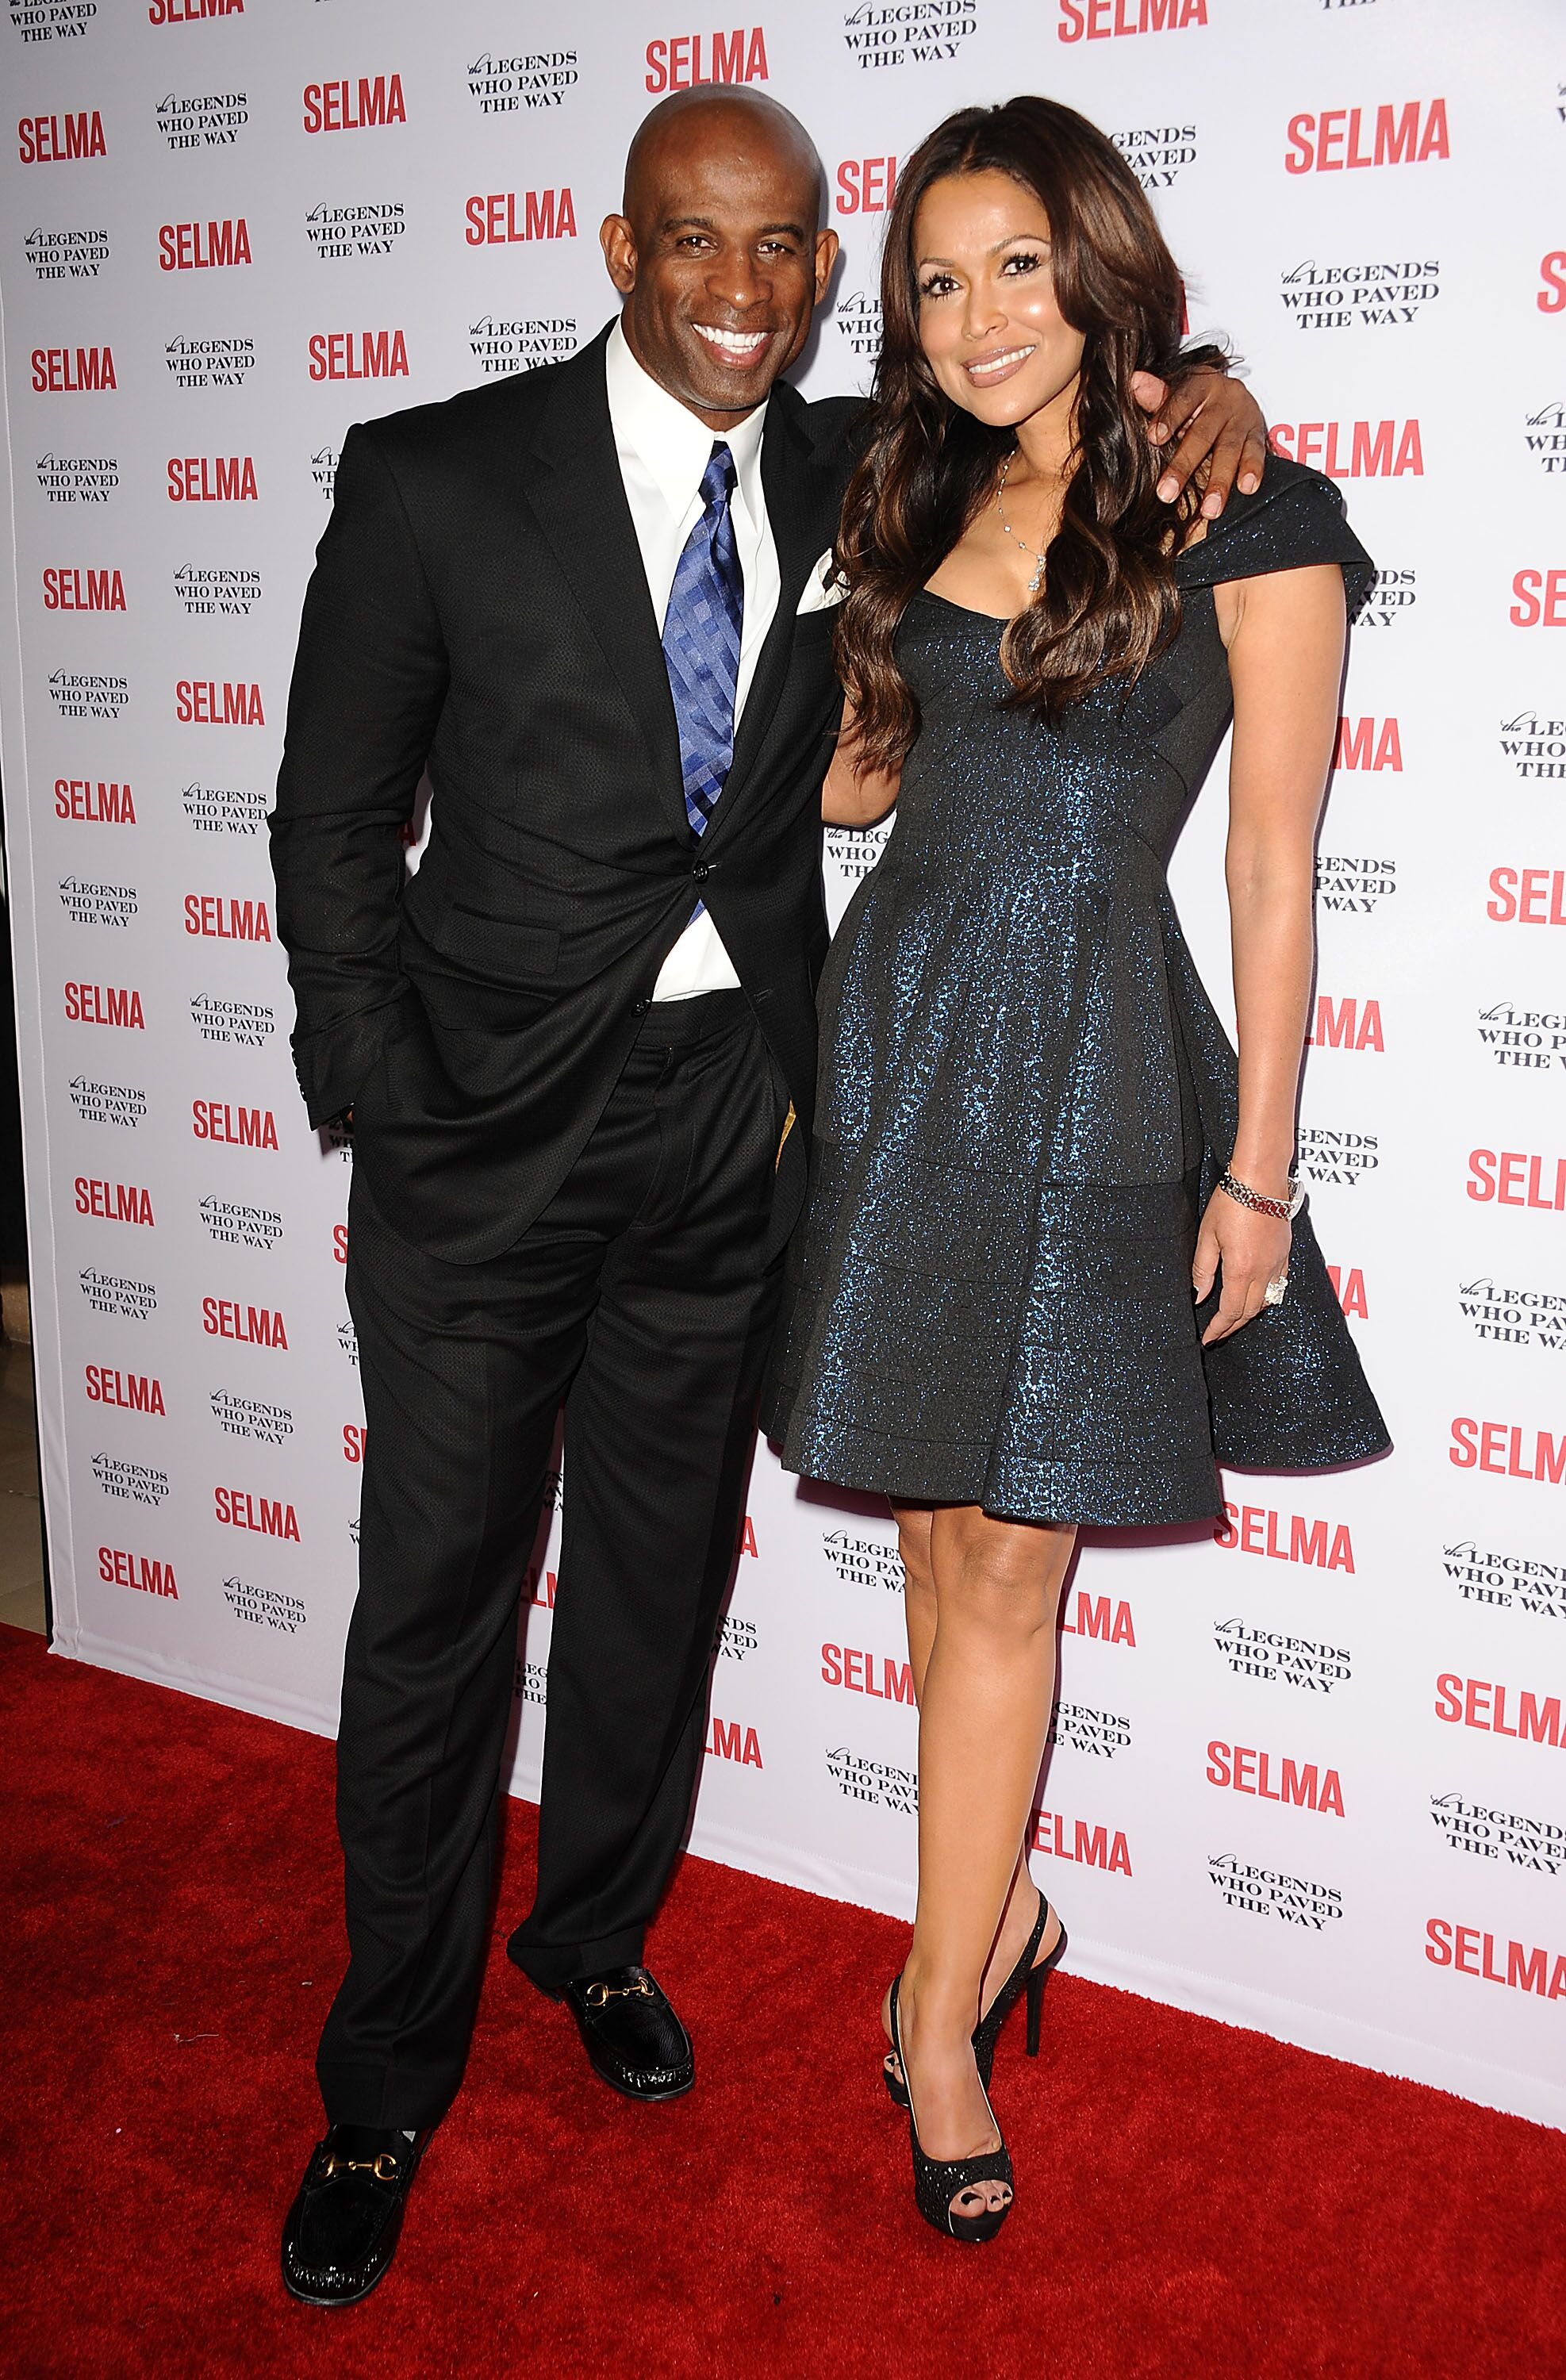 "Deion Sanders and Tracey Edmonds attend the ""Selma"" and the Legends Who Paved the Way gala at Bacara Resort on December 6, 2014 in Goleta, California. 